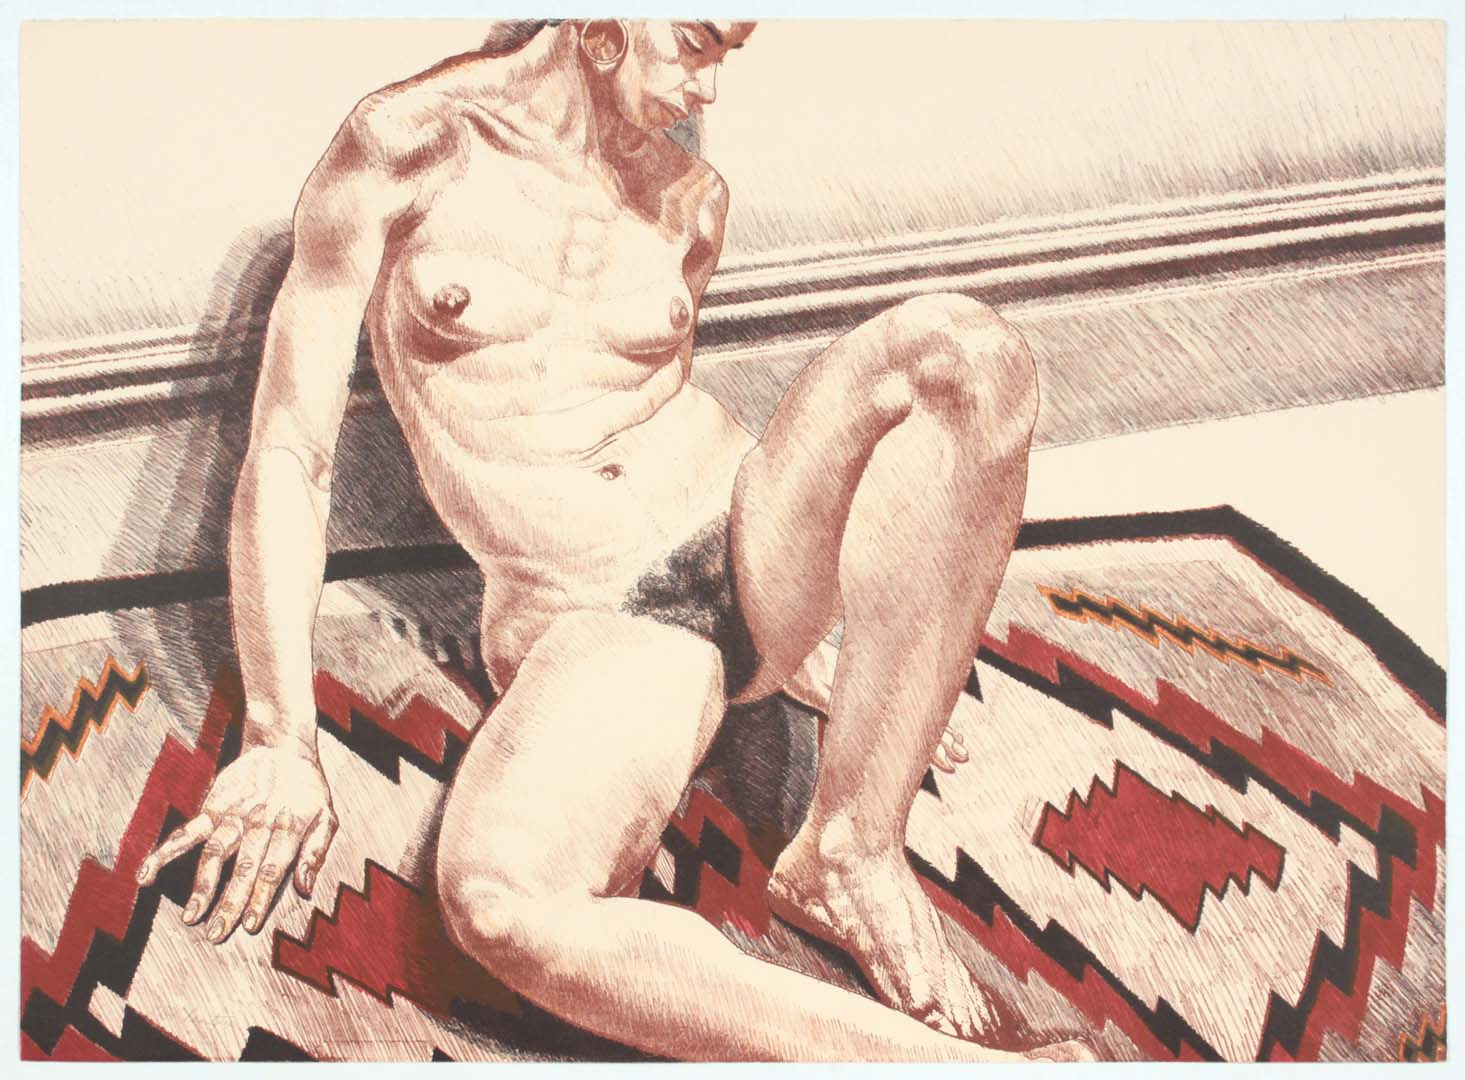 """1972 Nude on Navajo Rug Lithograph on Paper 24.5"""" x 34"""""""